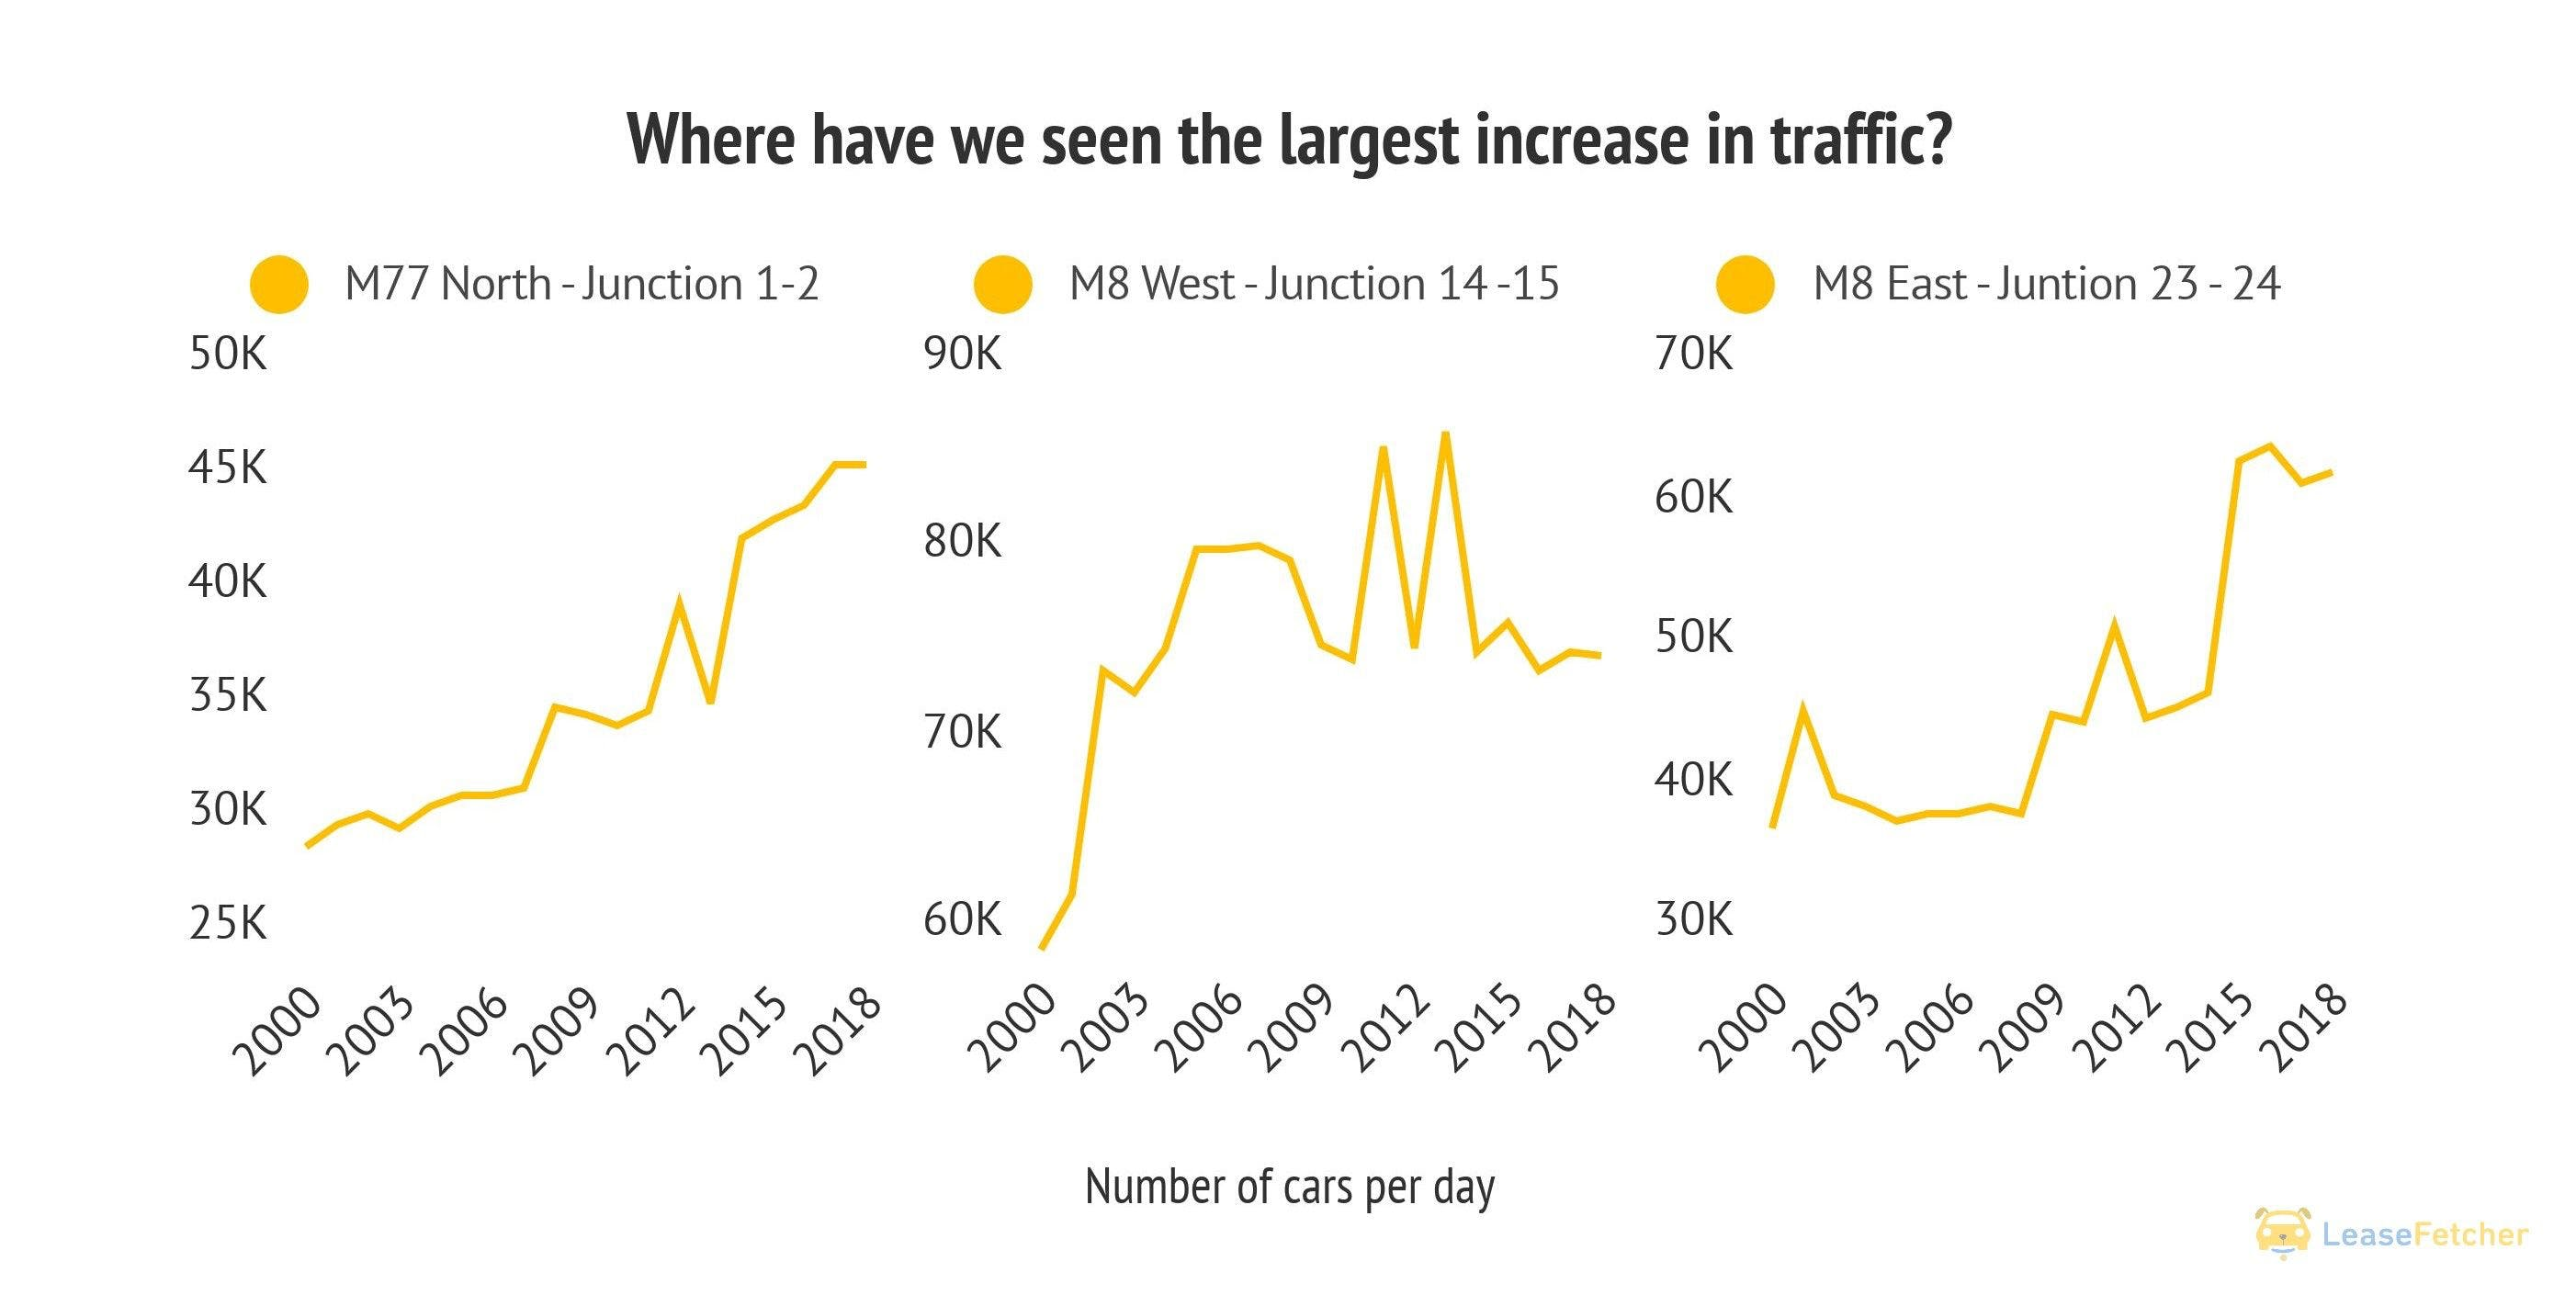 Increase in traffic by street